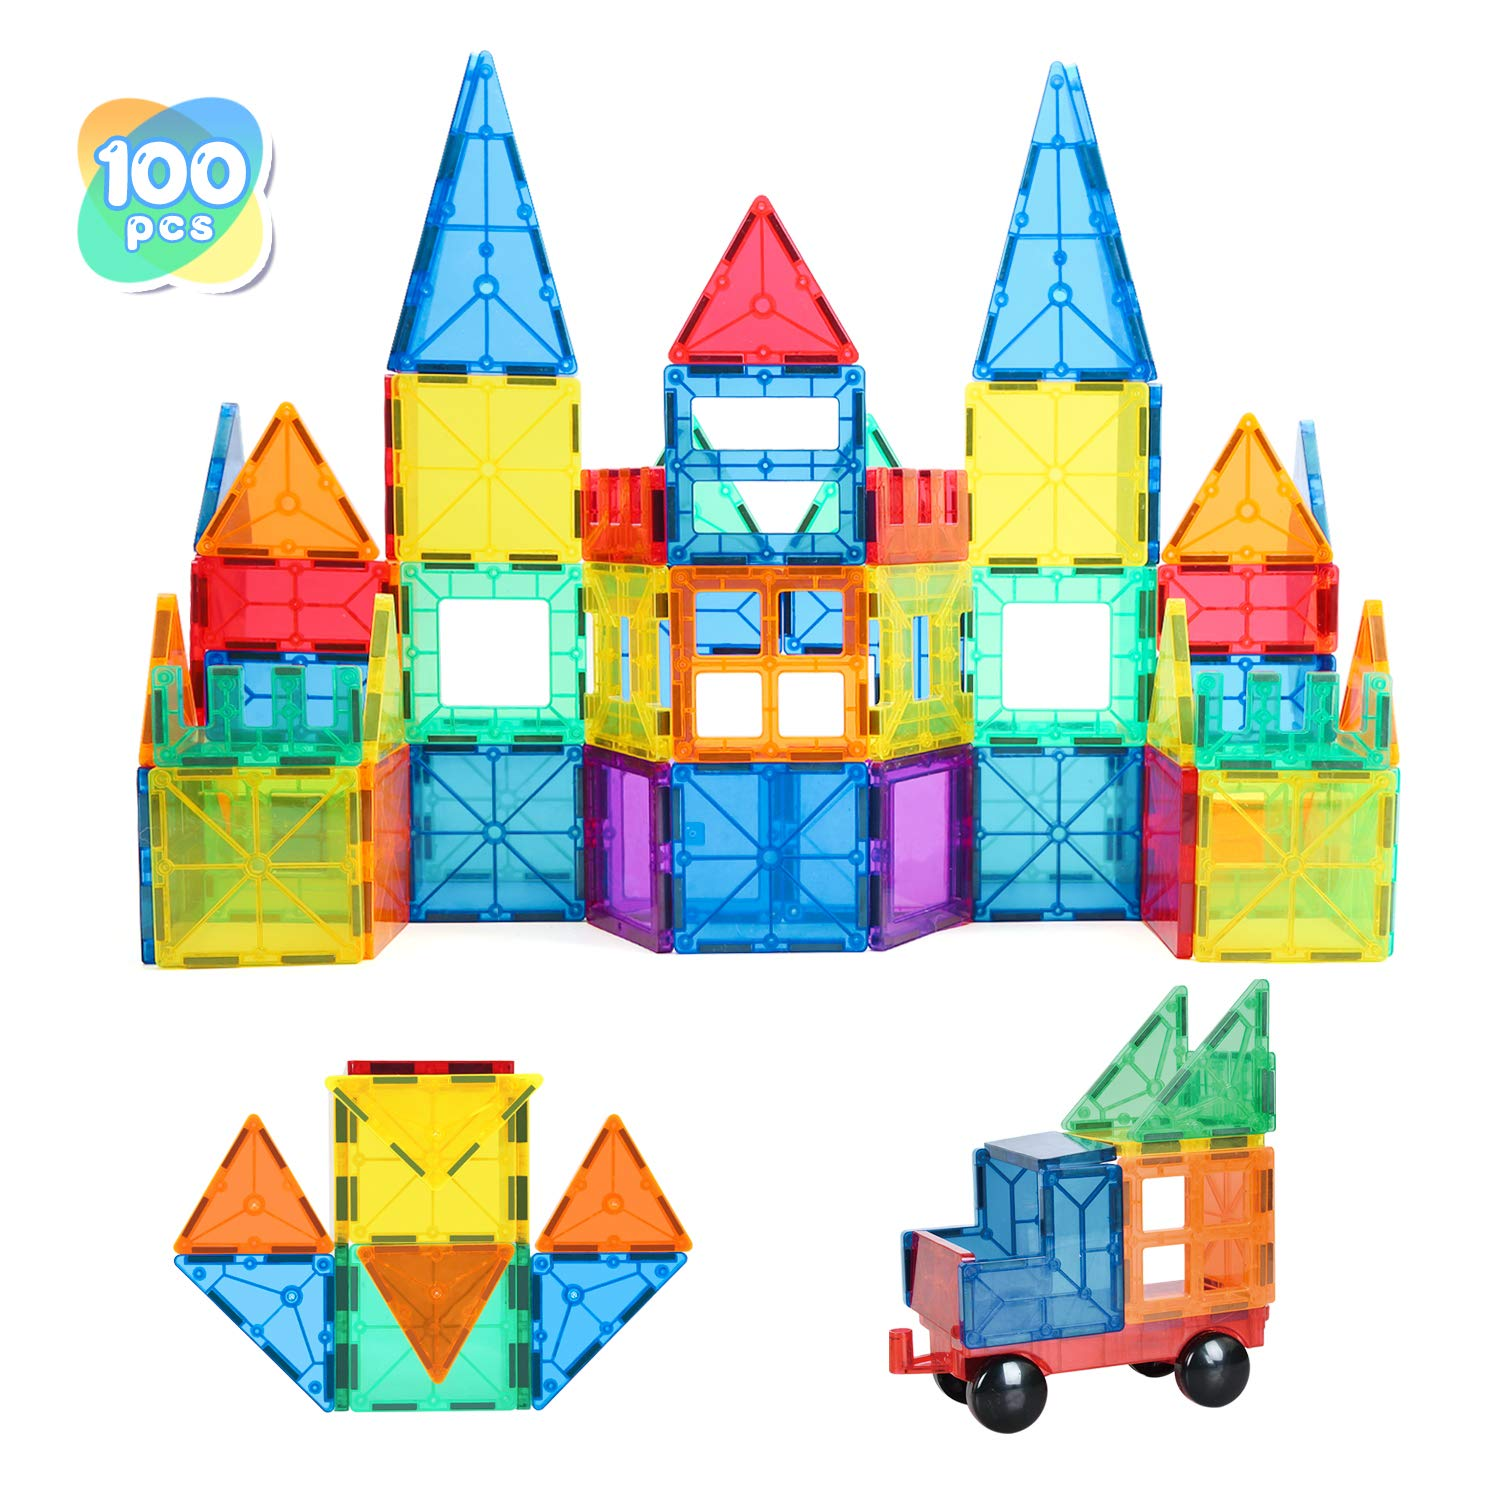 VegCow 100pcs Magnetic Tiles Set - 3D Magnet Building Blocks, Educational Construction Toys for Kids – Super Durable with Strong Magnets and Superior Color